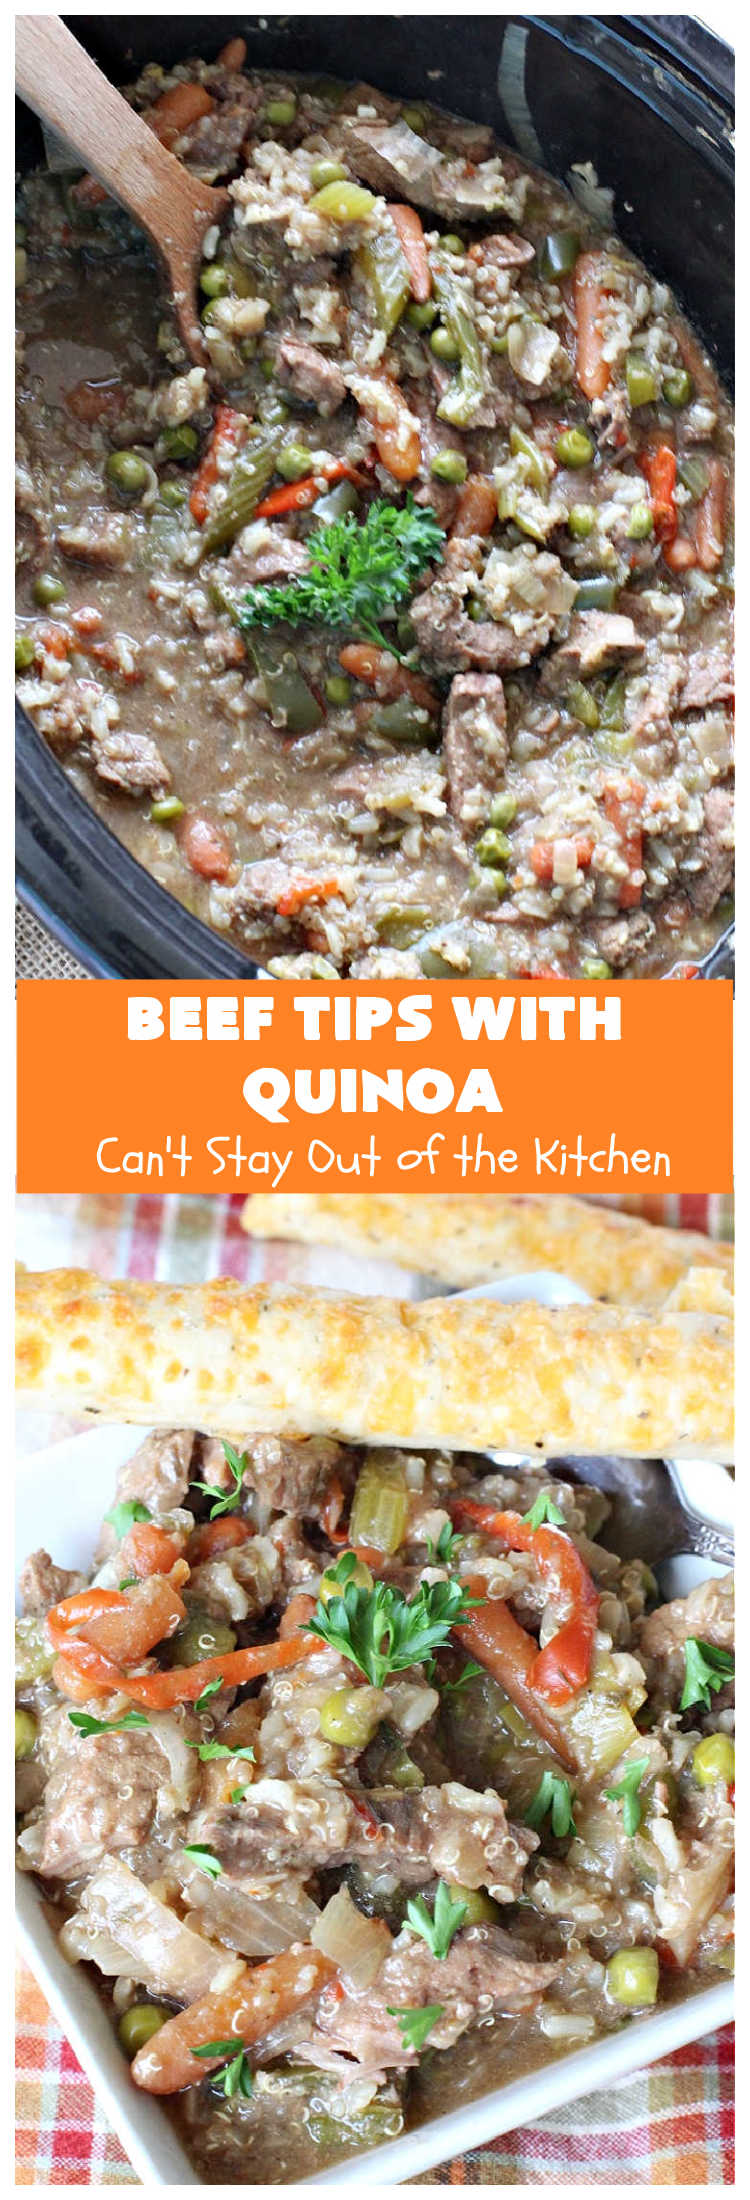 Beef Tips with Quinoa | Can't Stay Out of the Kitchen | sumptuous #beef entree that's made in the #crockpot! Made with #quinoa, #RoundSteak and lots of veggies. We loved this recipe. #healthy #GlutenFree #BeefTips #BeefTipsWithQuinoa #SlowCooker